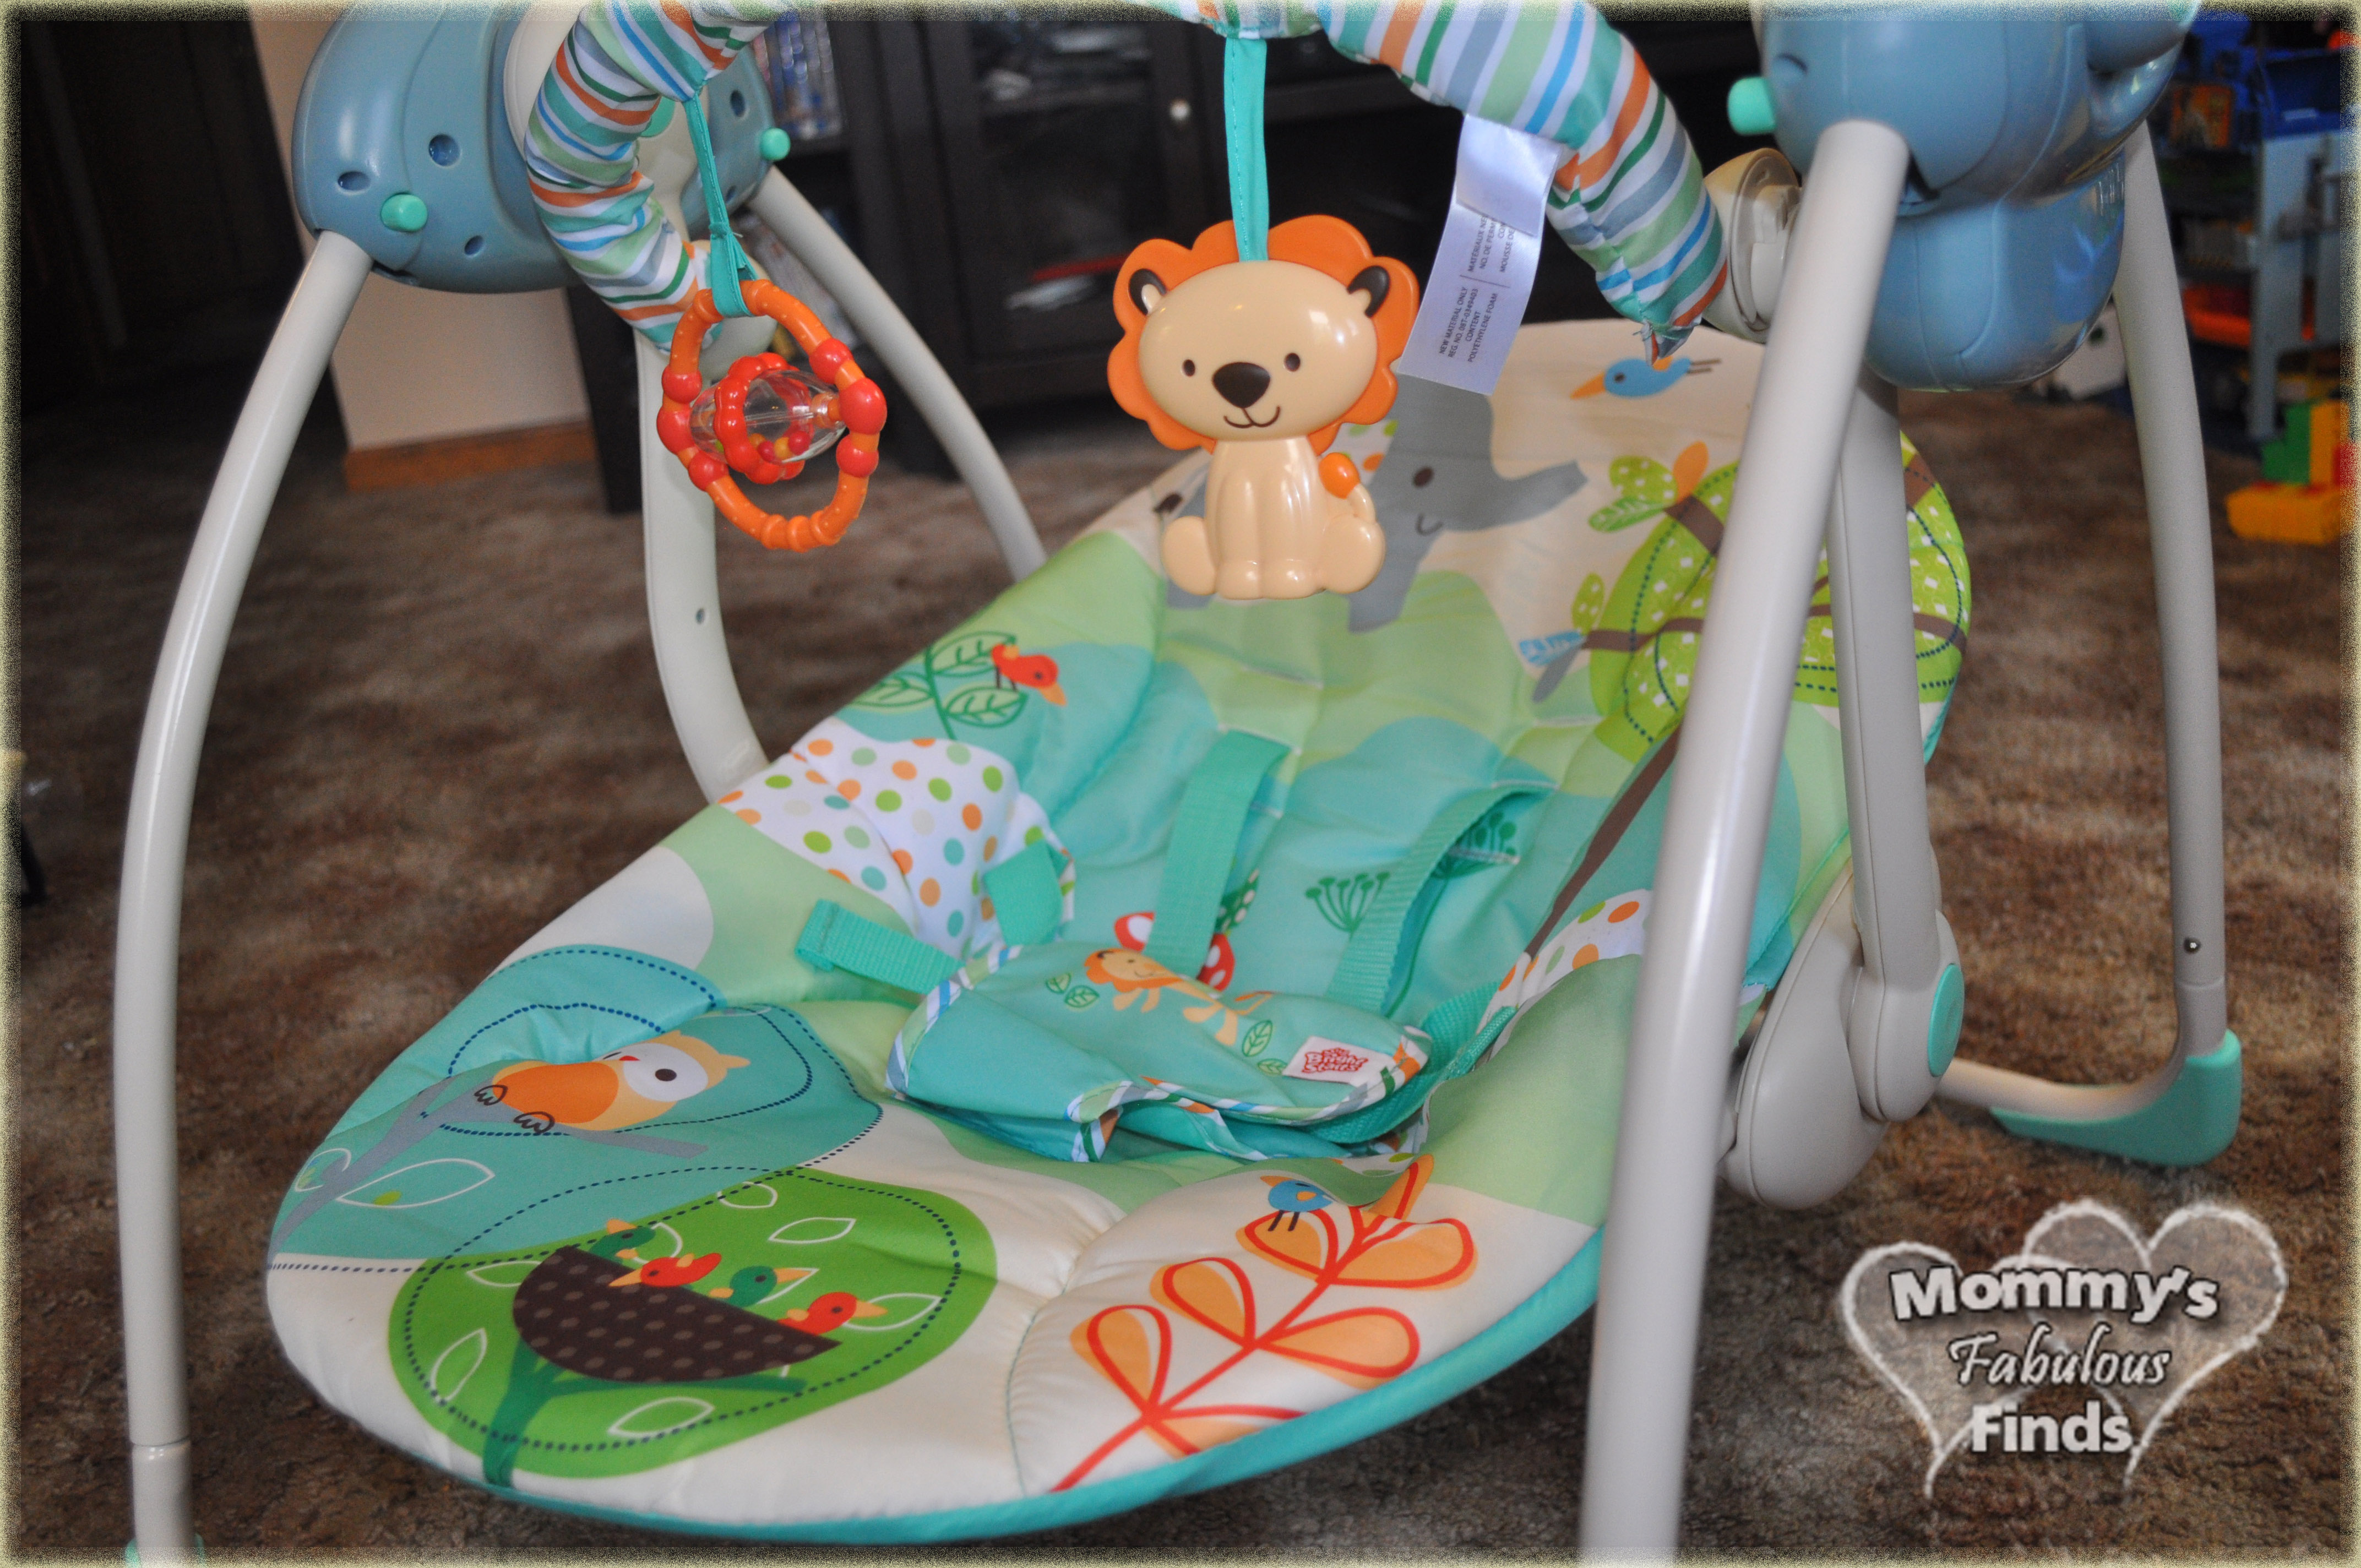 Bright Starts Playful Pals Portable Swing | Making Mom Happy This Mother's Day | Giveaway